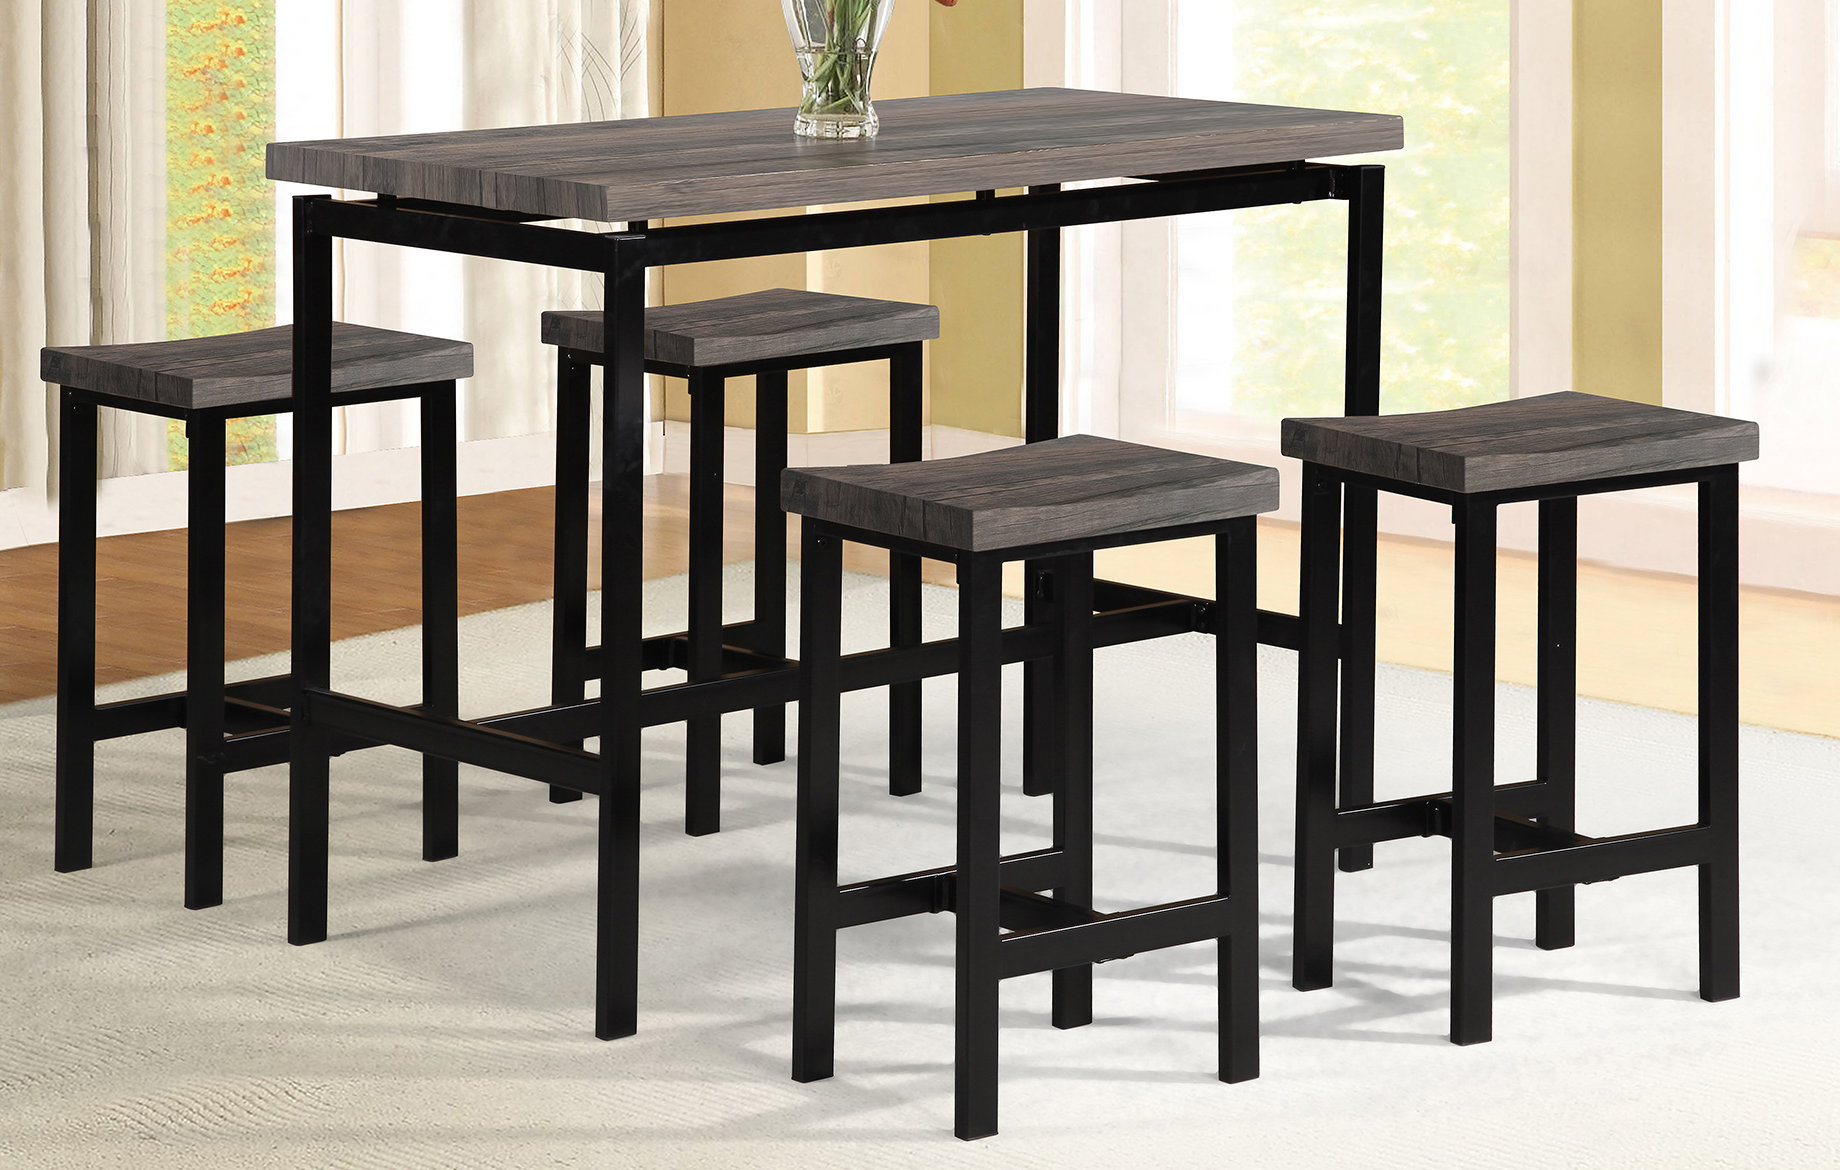 Wrought Studio Denzel 5 Piece Counter Height Breakfast Nook Dining Inside Most Recently Released Denzel 5 Piece Counter Height Breakfast Nook Dining Sets (View 3 of 25)